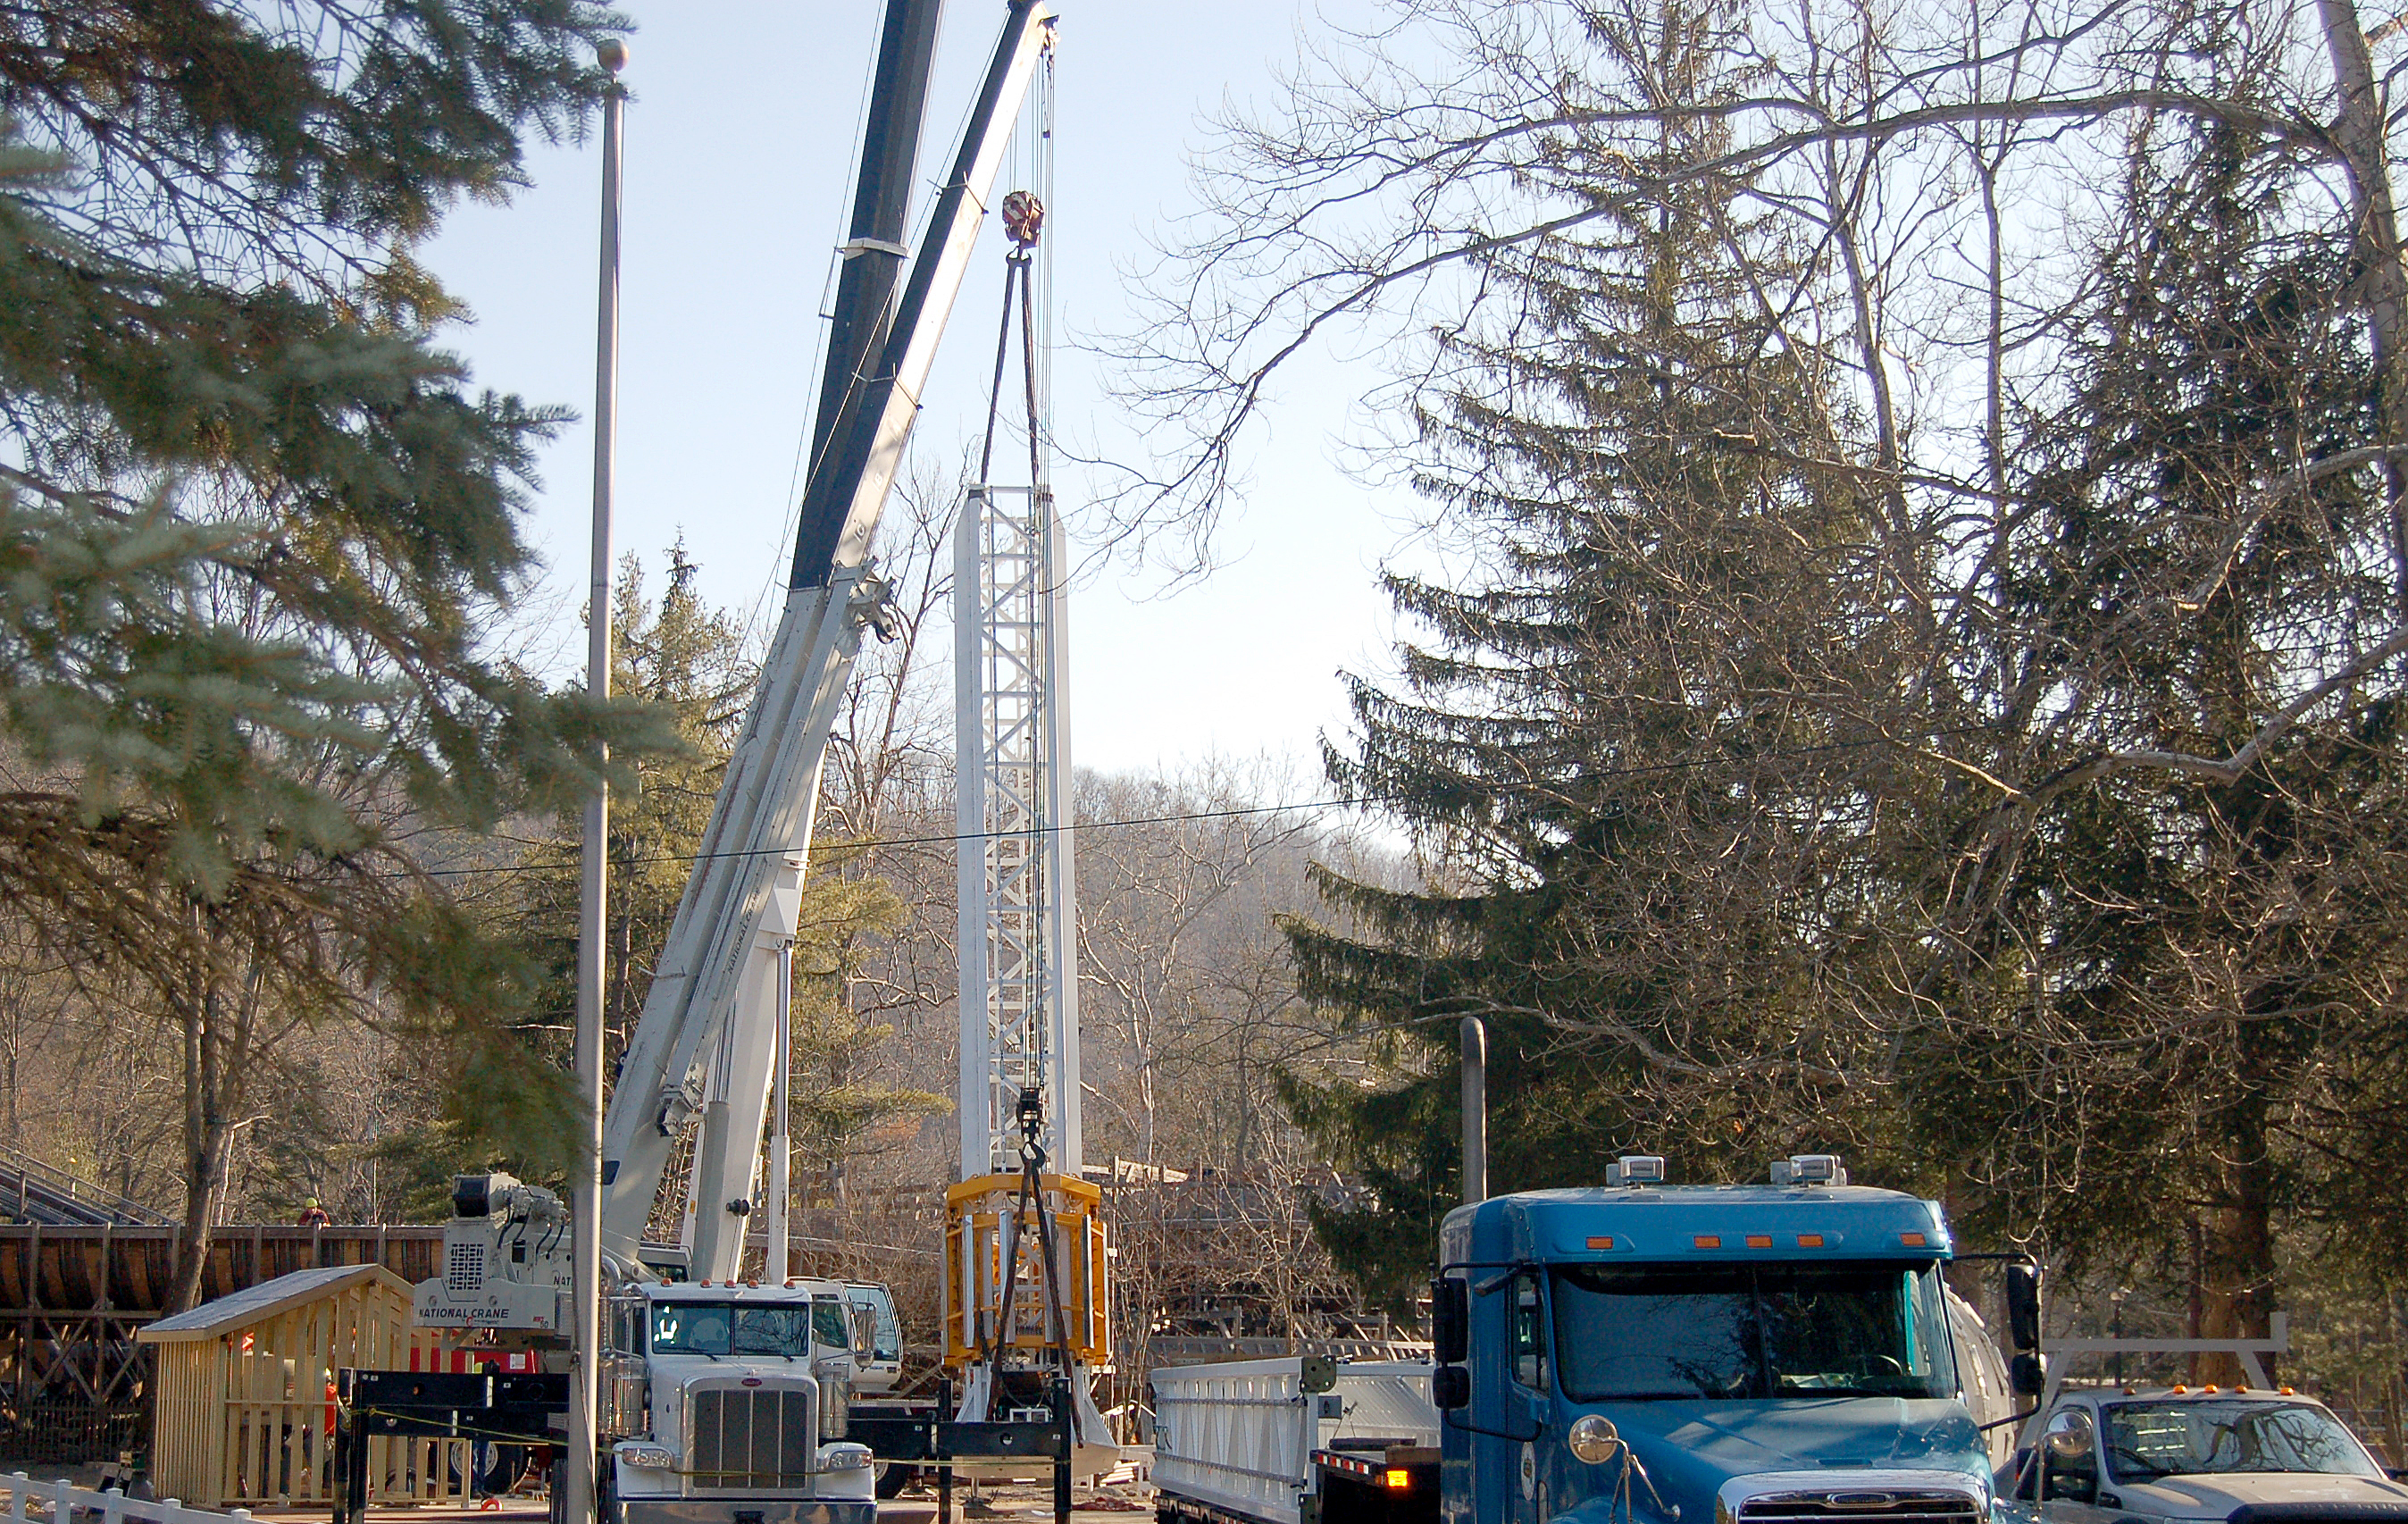 Part of the Stratos Fear is lifted off the trailer bed before being placed at Knoebels Amusement Resort.